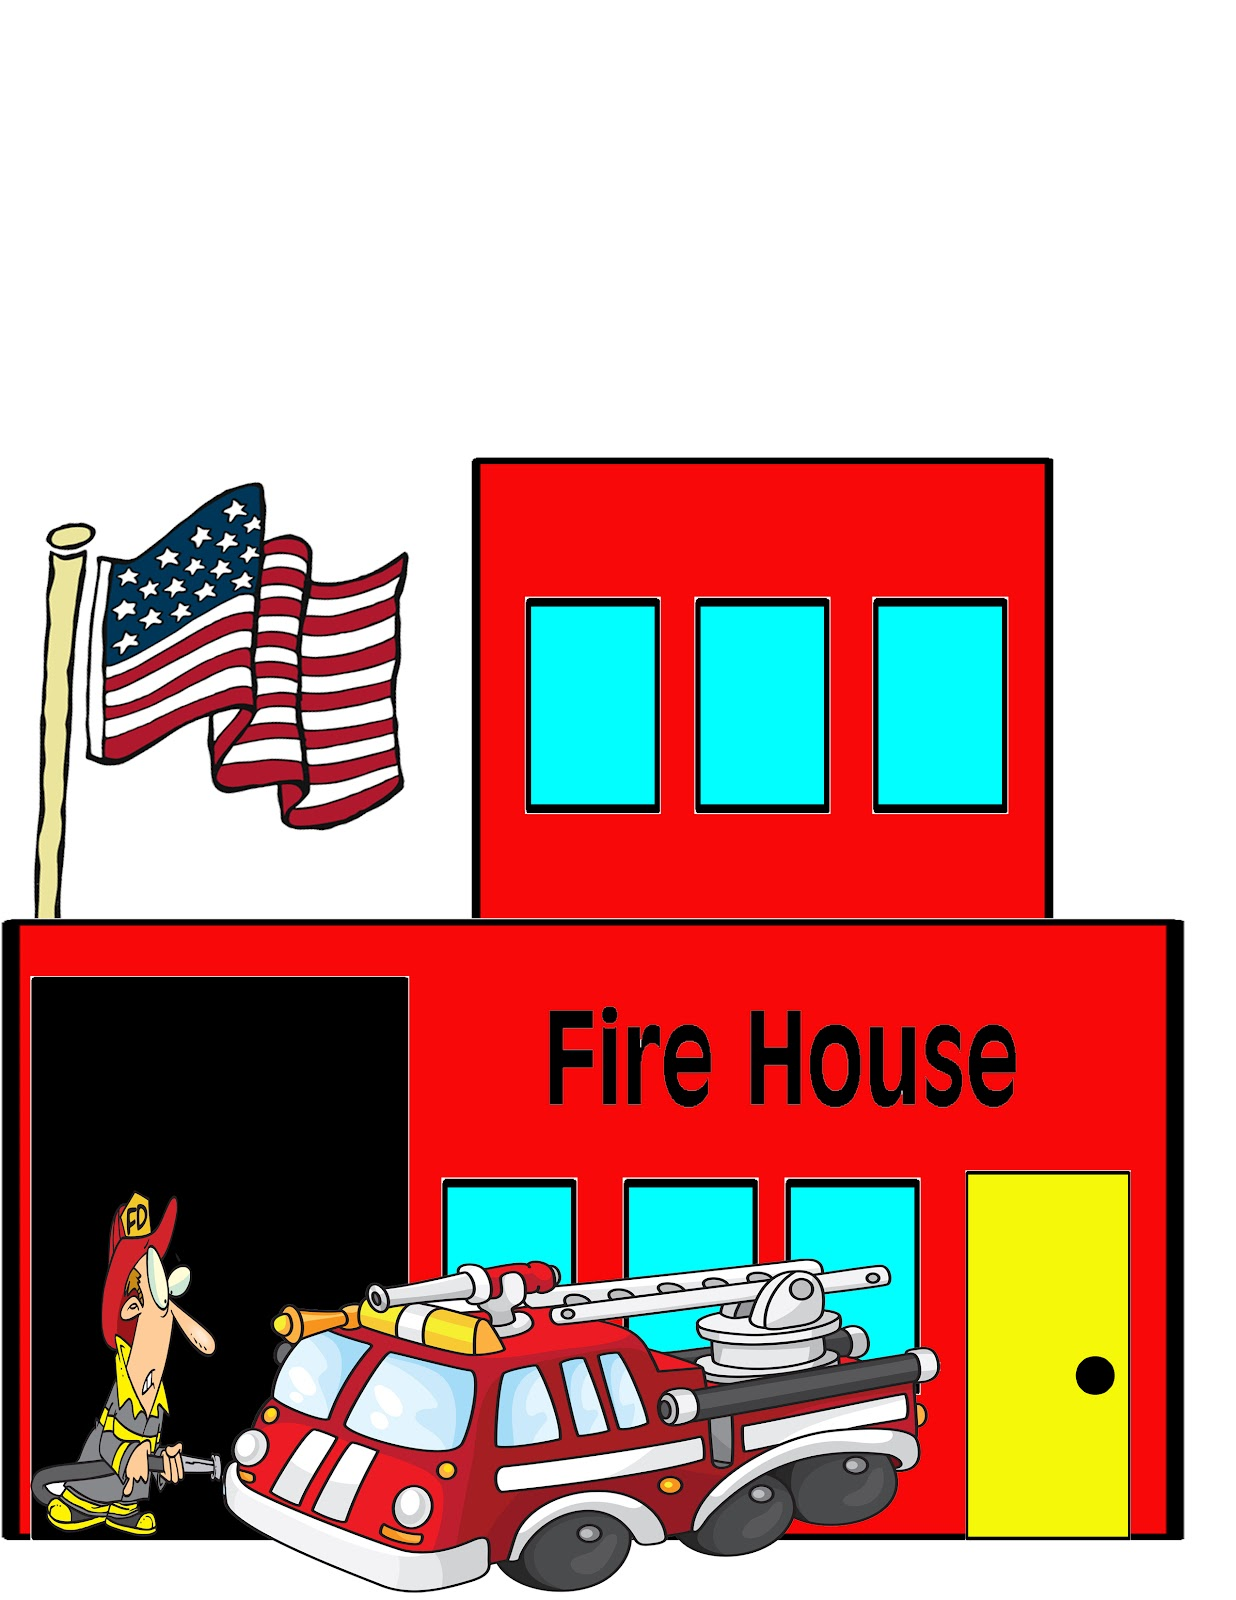 Building on fire clipart.